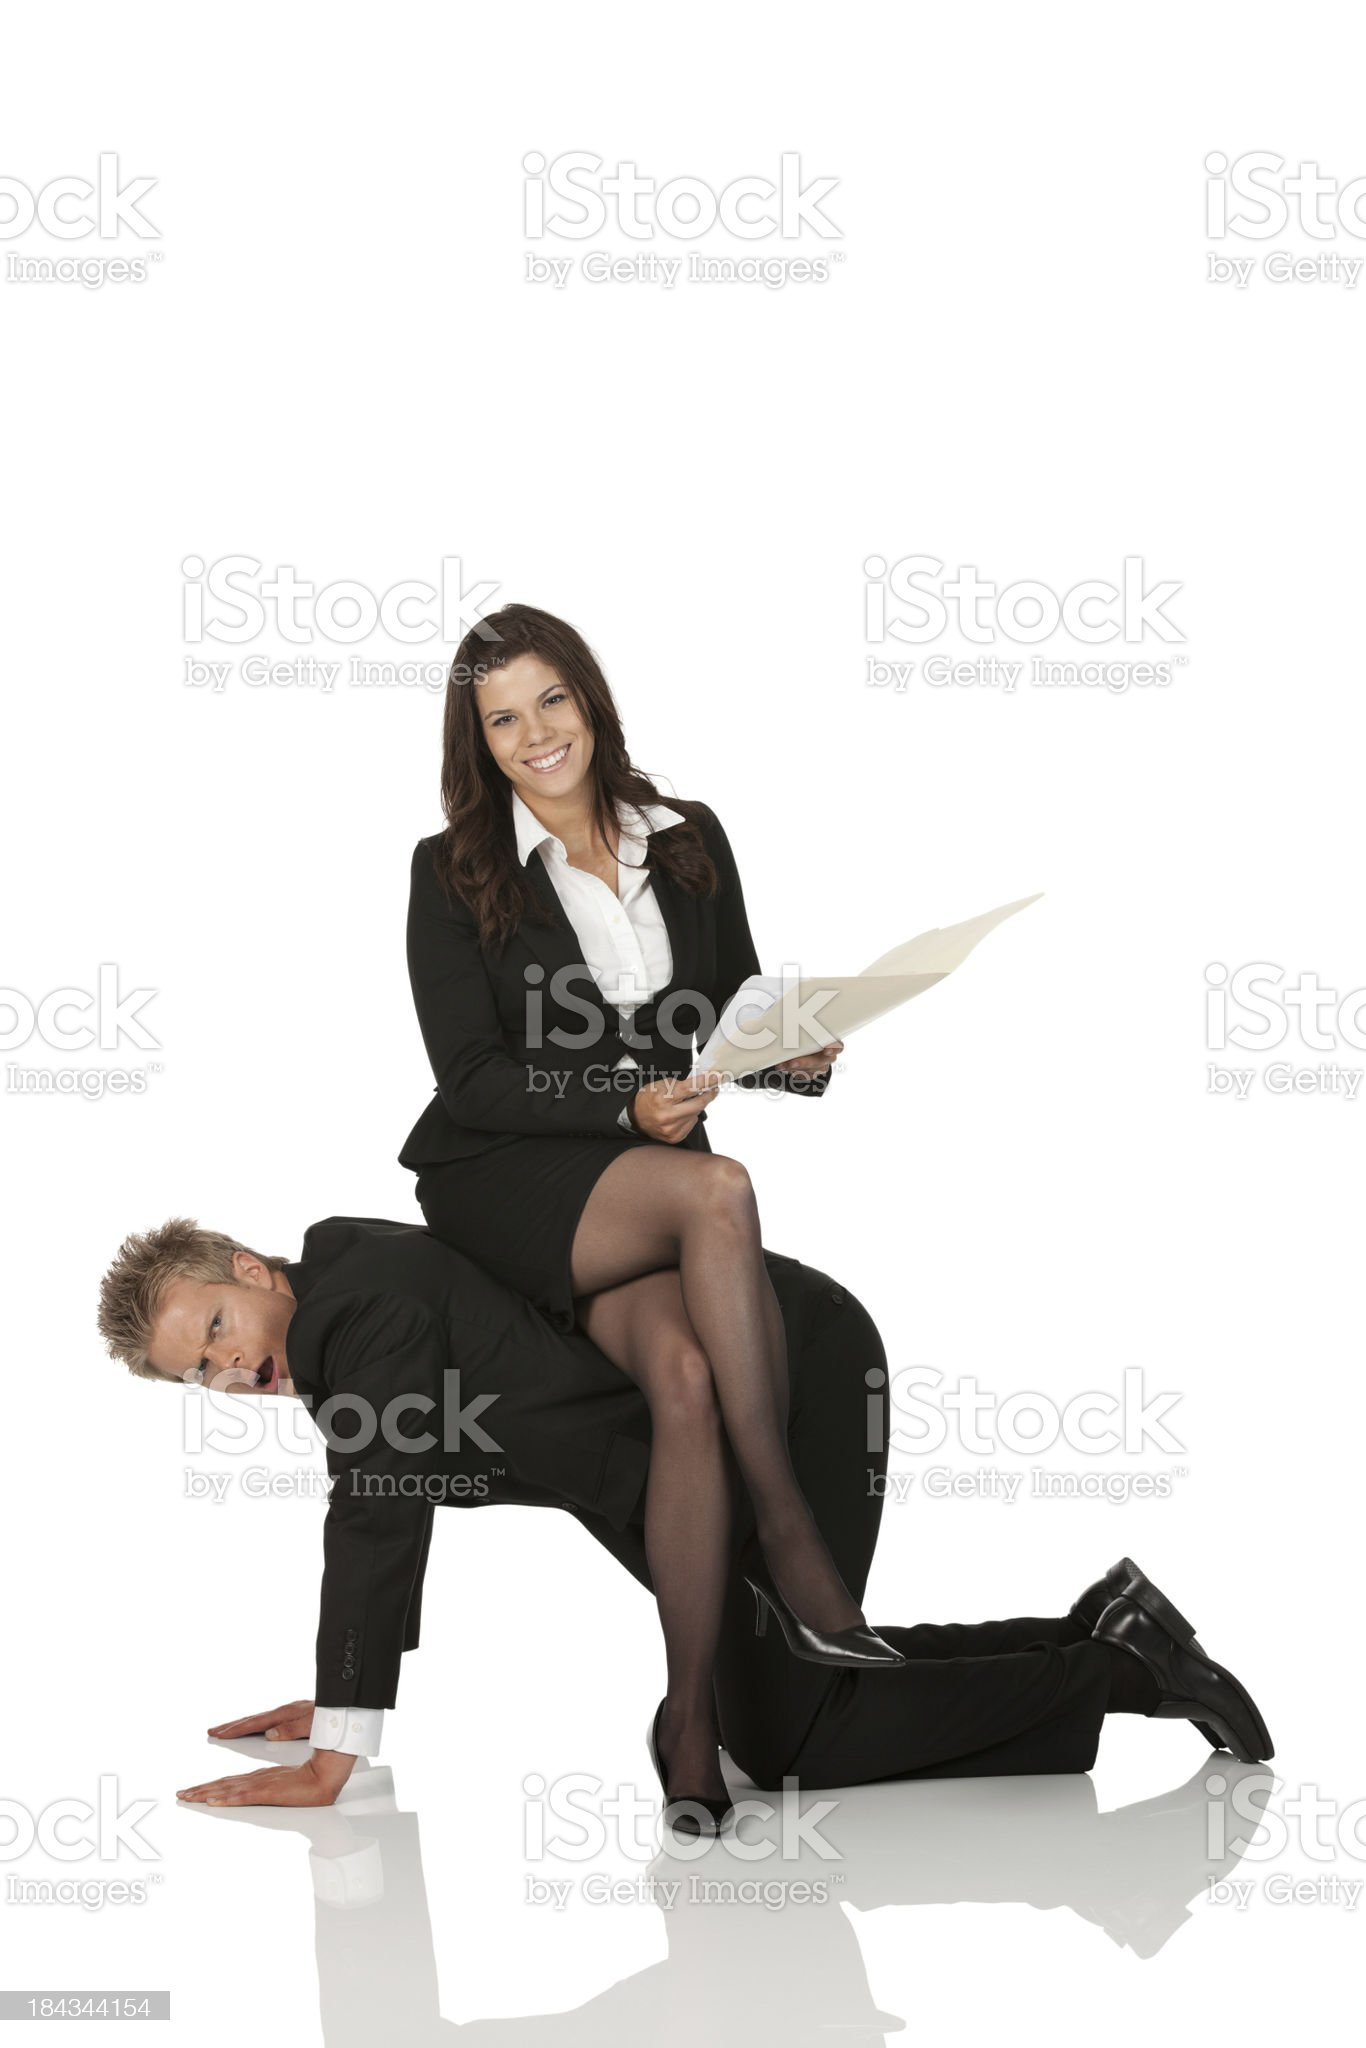 Businesswoman sitting on the back of a man royalty-free stock photo